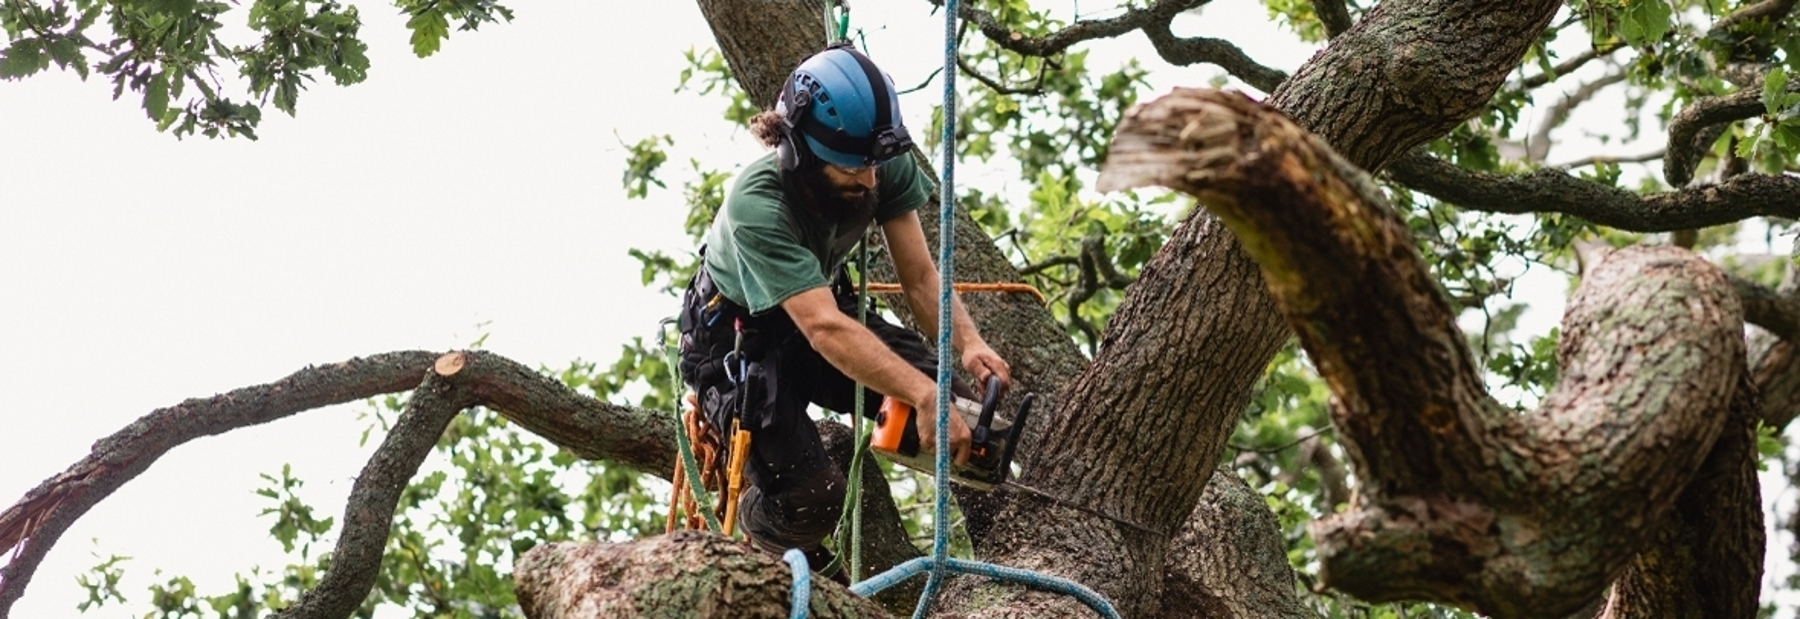 Arborist chainsawing tree limb